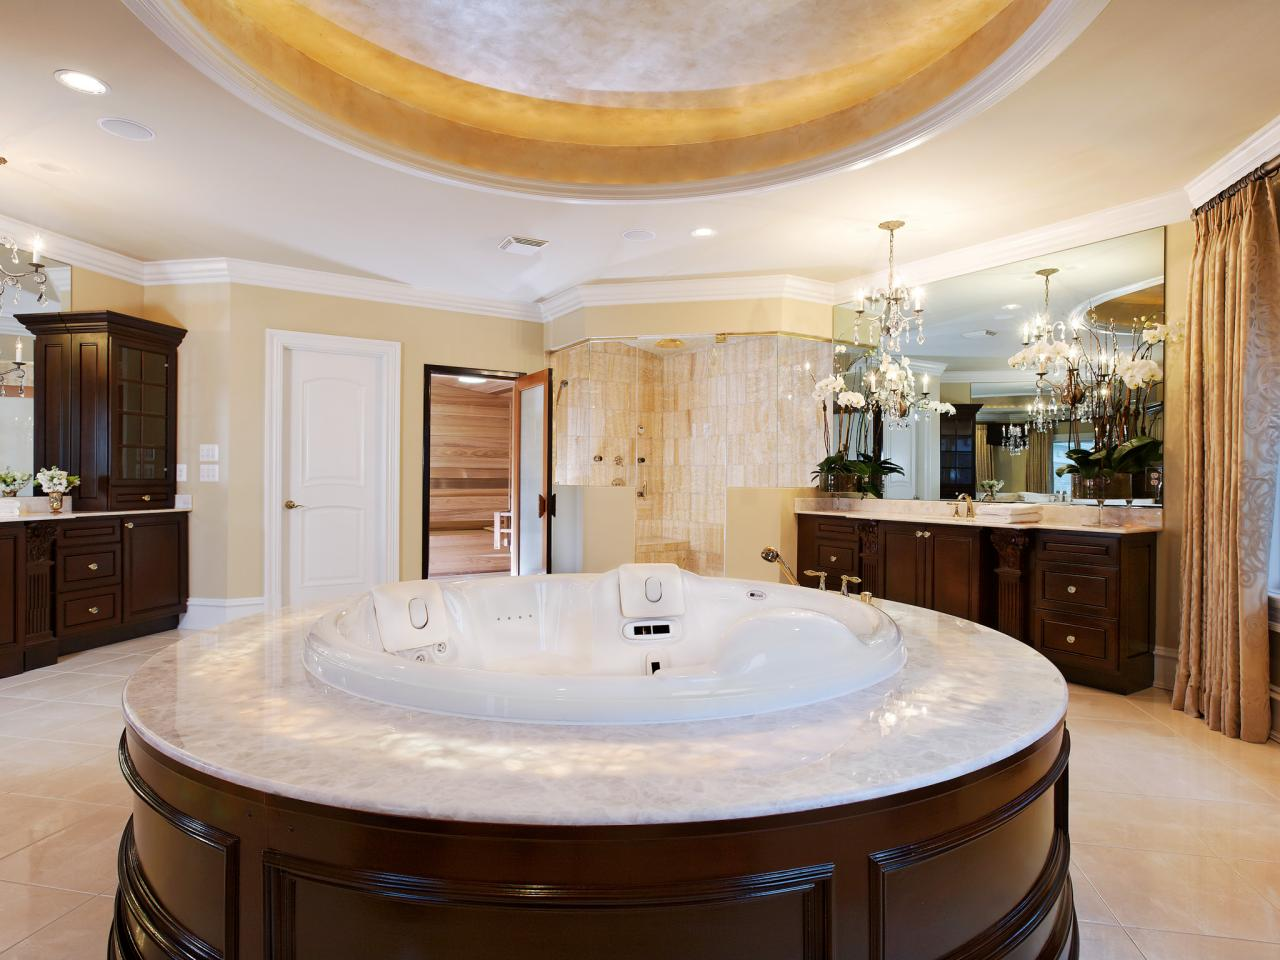 Whirlpool Tub Designs and Options: HGTV Pictures & Tips | HGTV